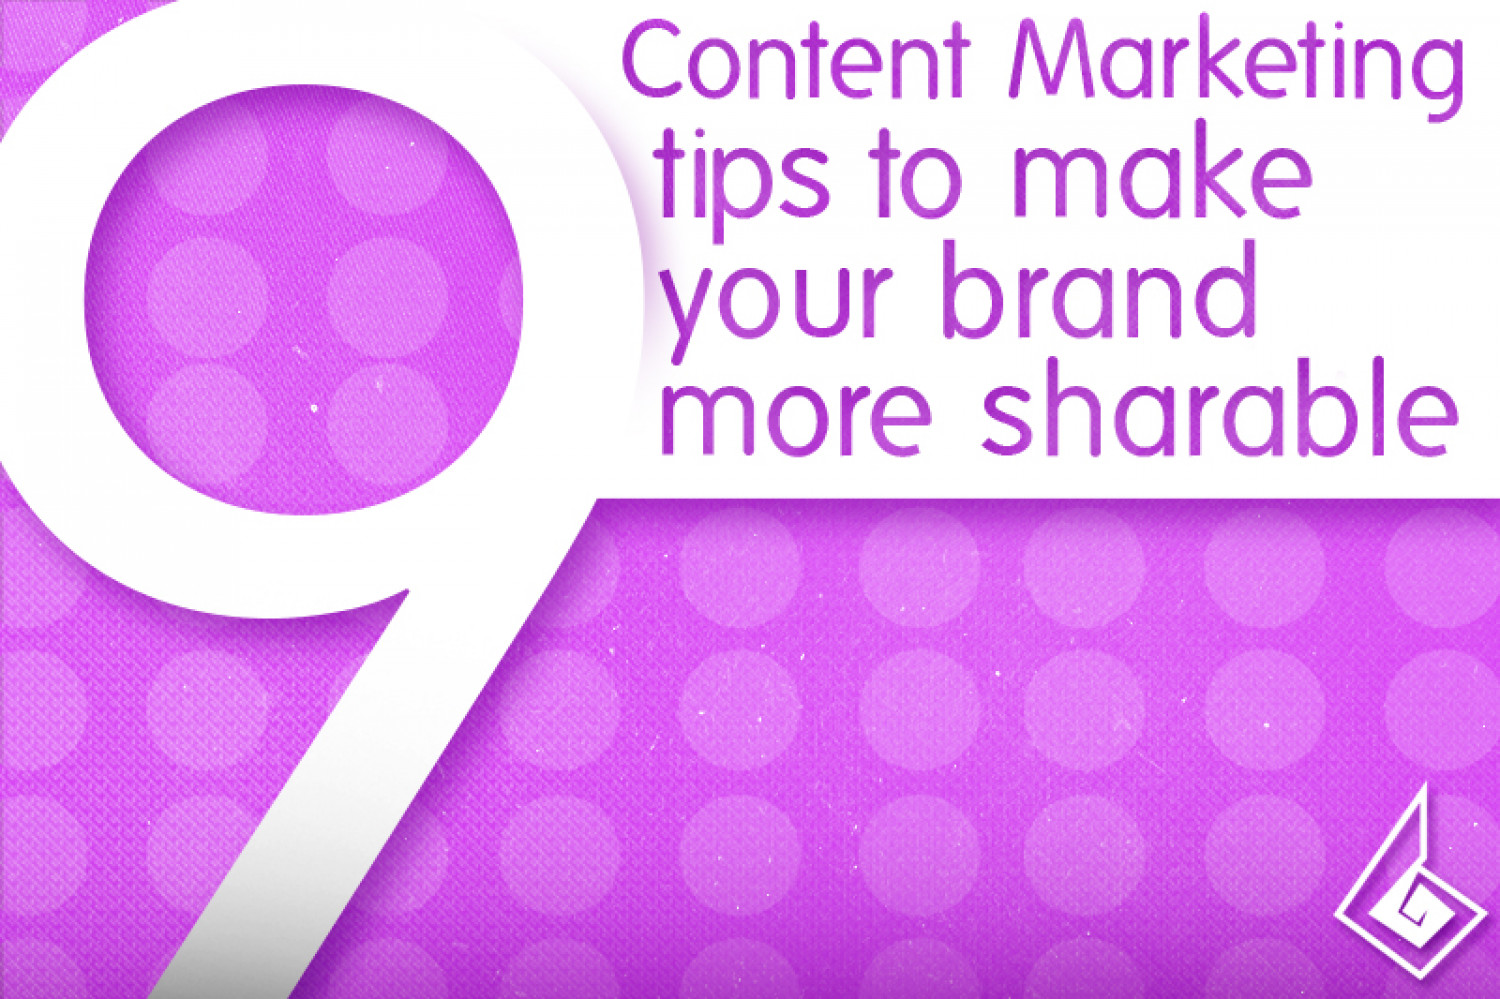 9 Content Marketing Tips to Make Your Brand More Sharable Infographic